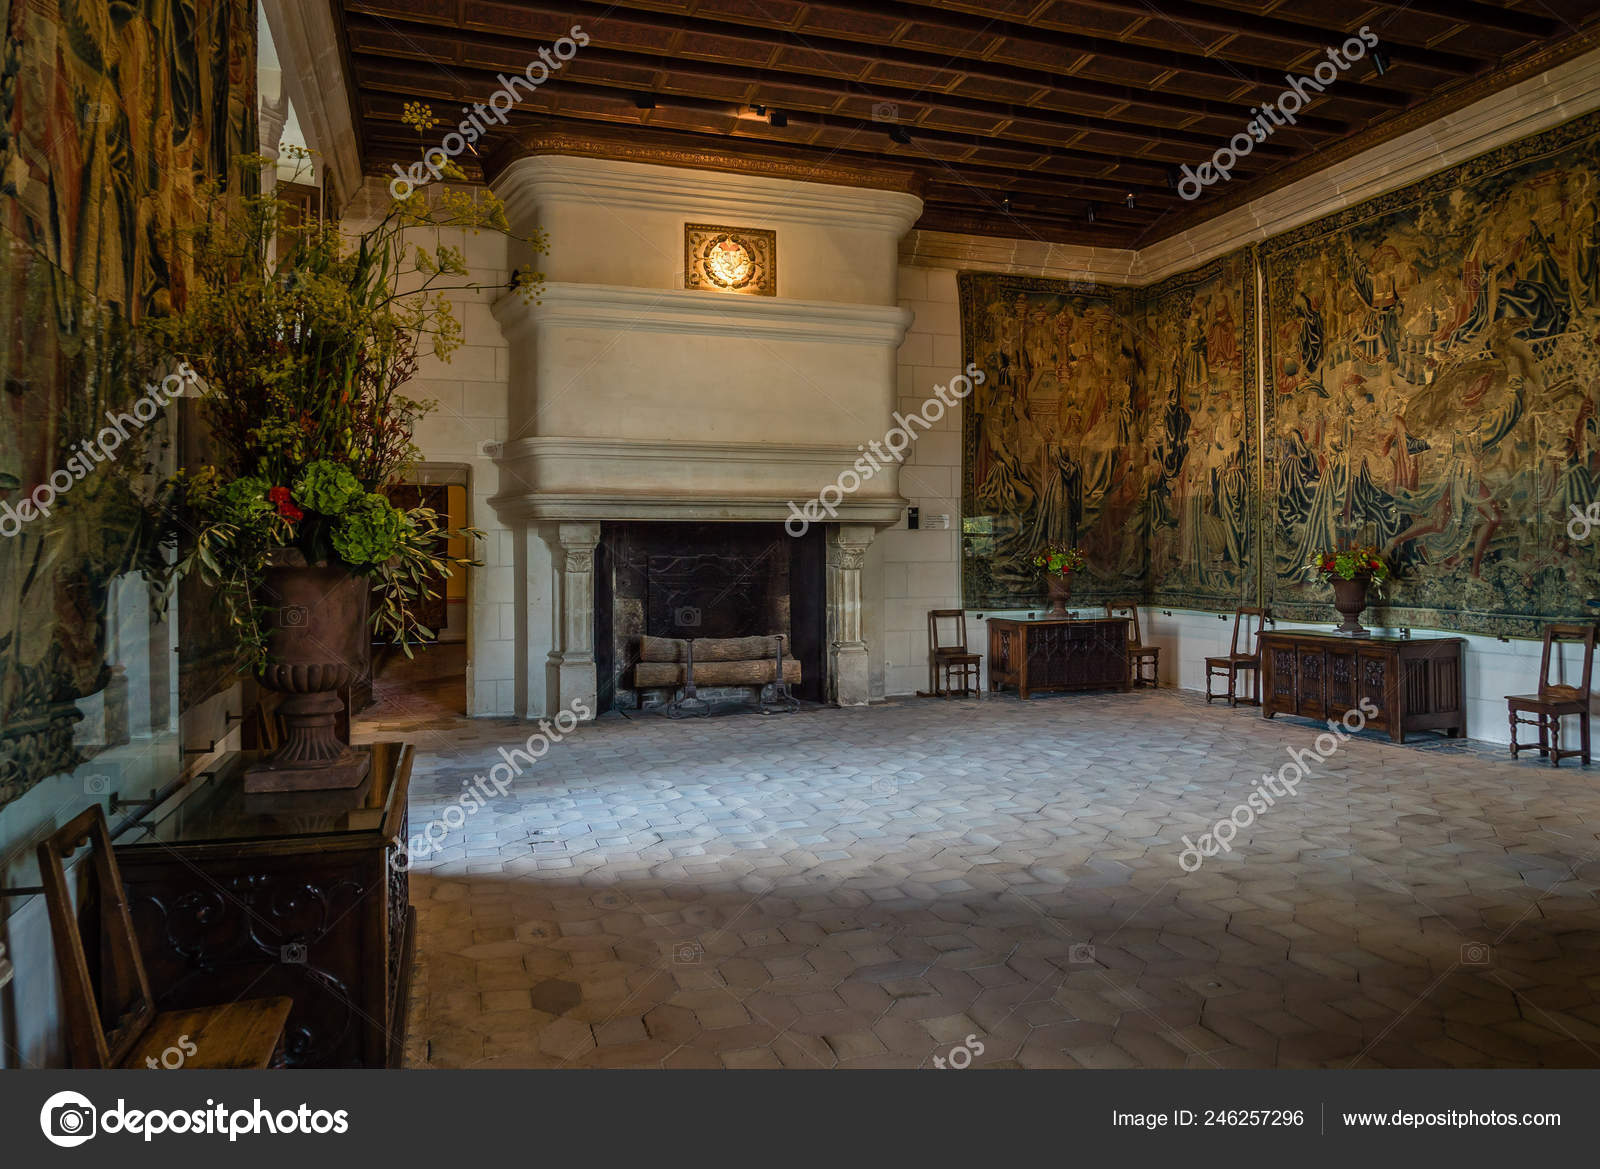 Large Fireplace Wall Covering Tapestry Chenonceau Castle Stock Editorial Photo C Bignoub 246257296